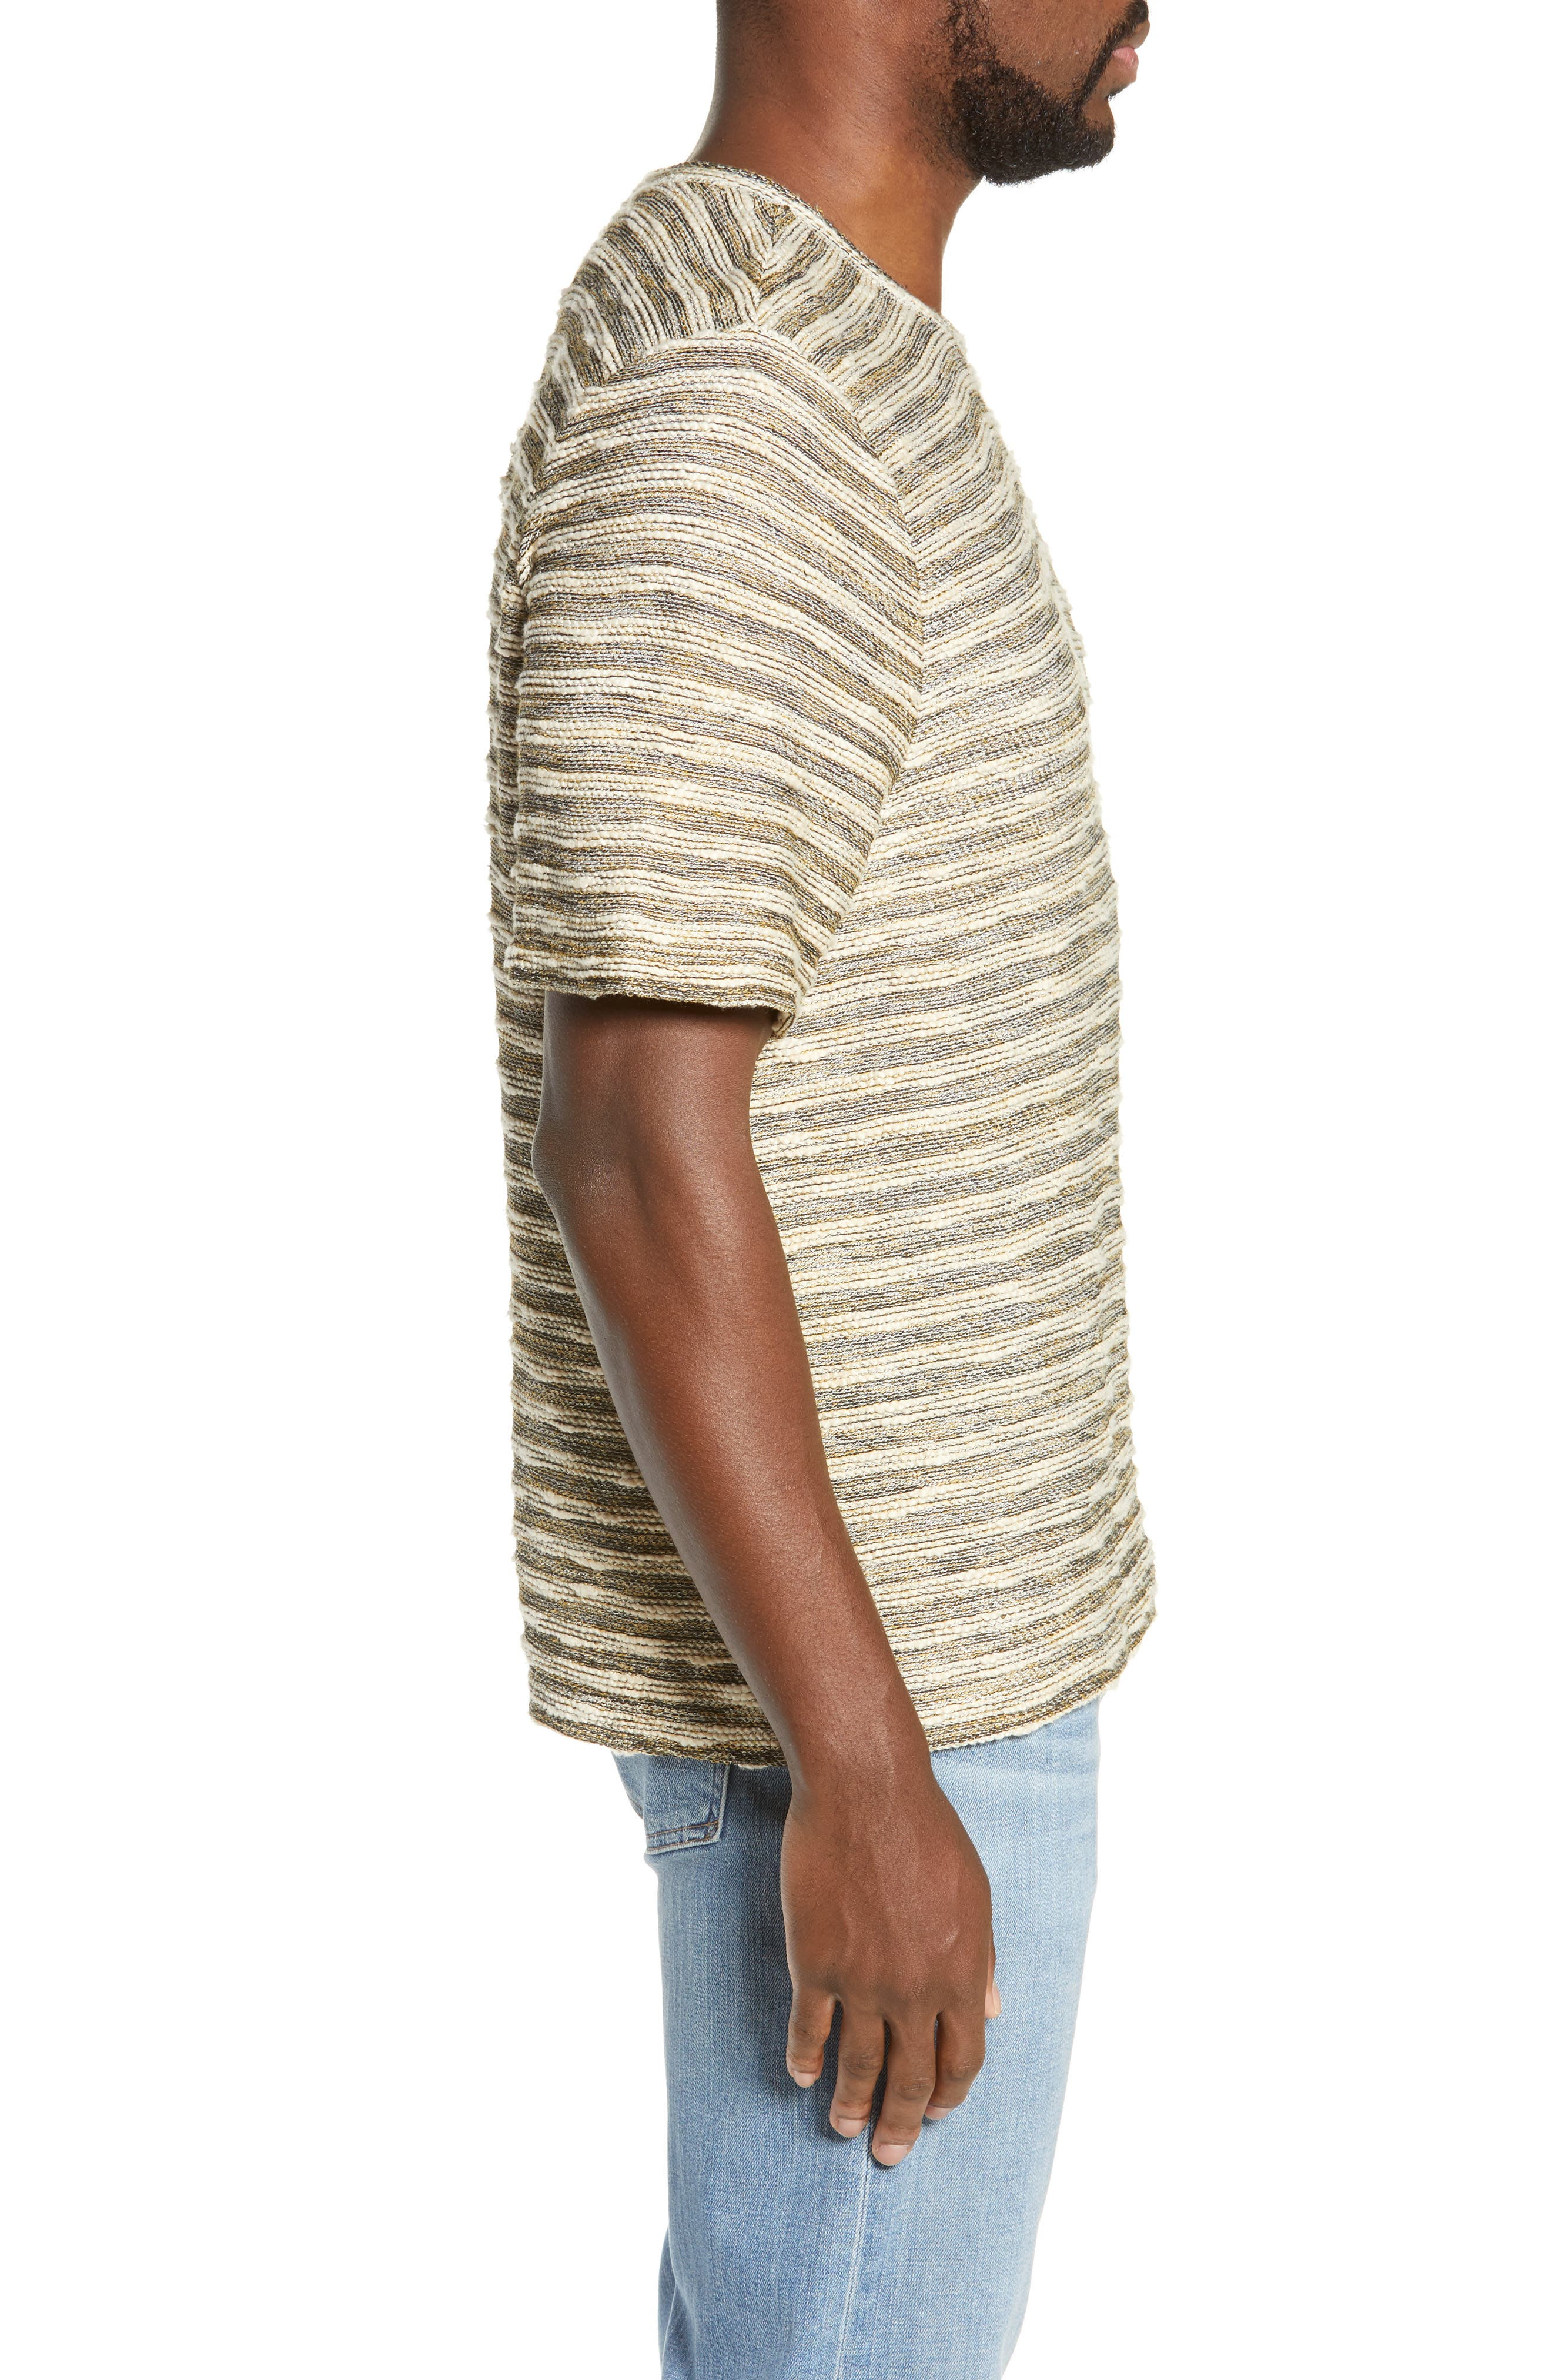 FRYE, Stripe Jacquard Regular Fit T-Shirt, Alternate thumbnail 3, color, WHITE